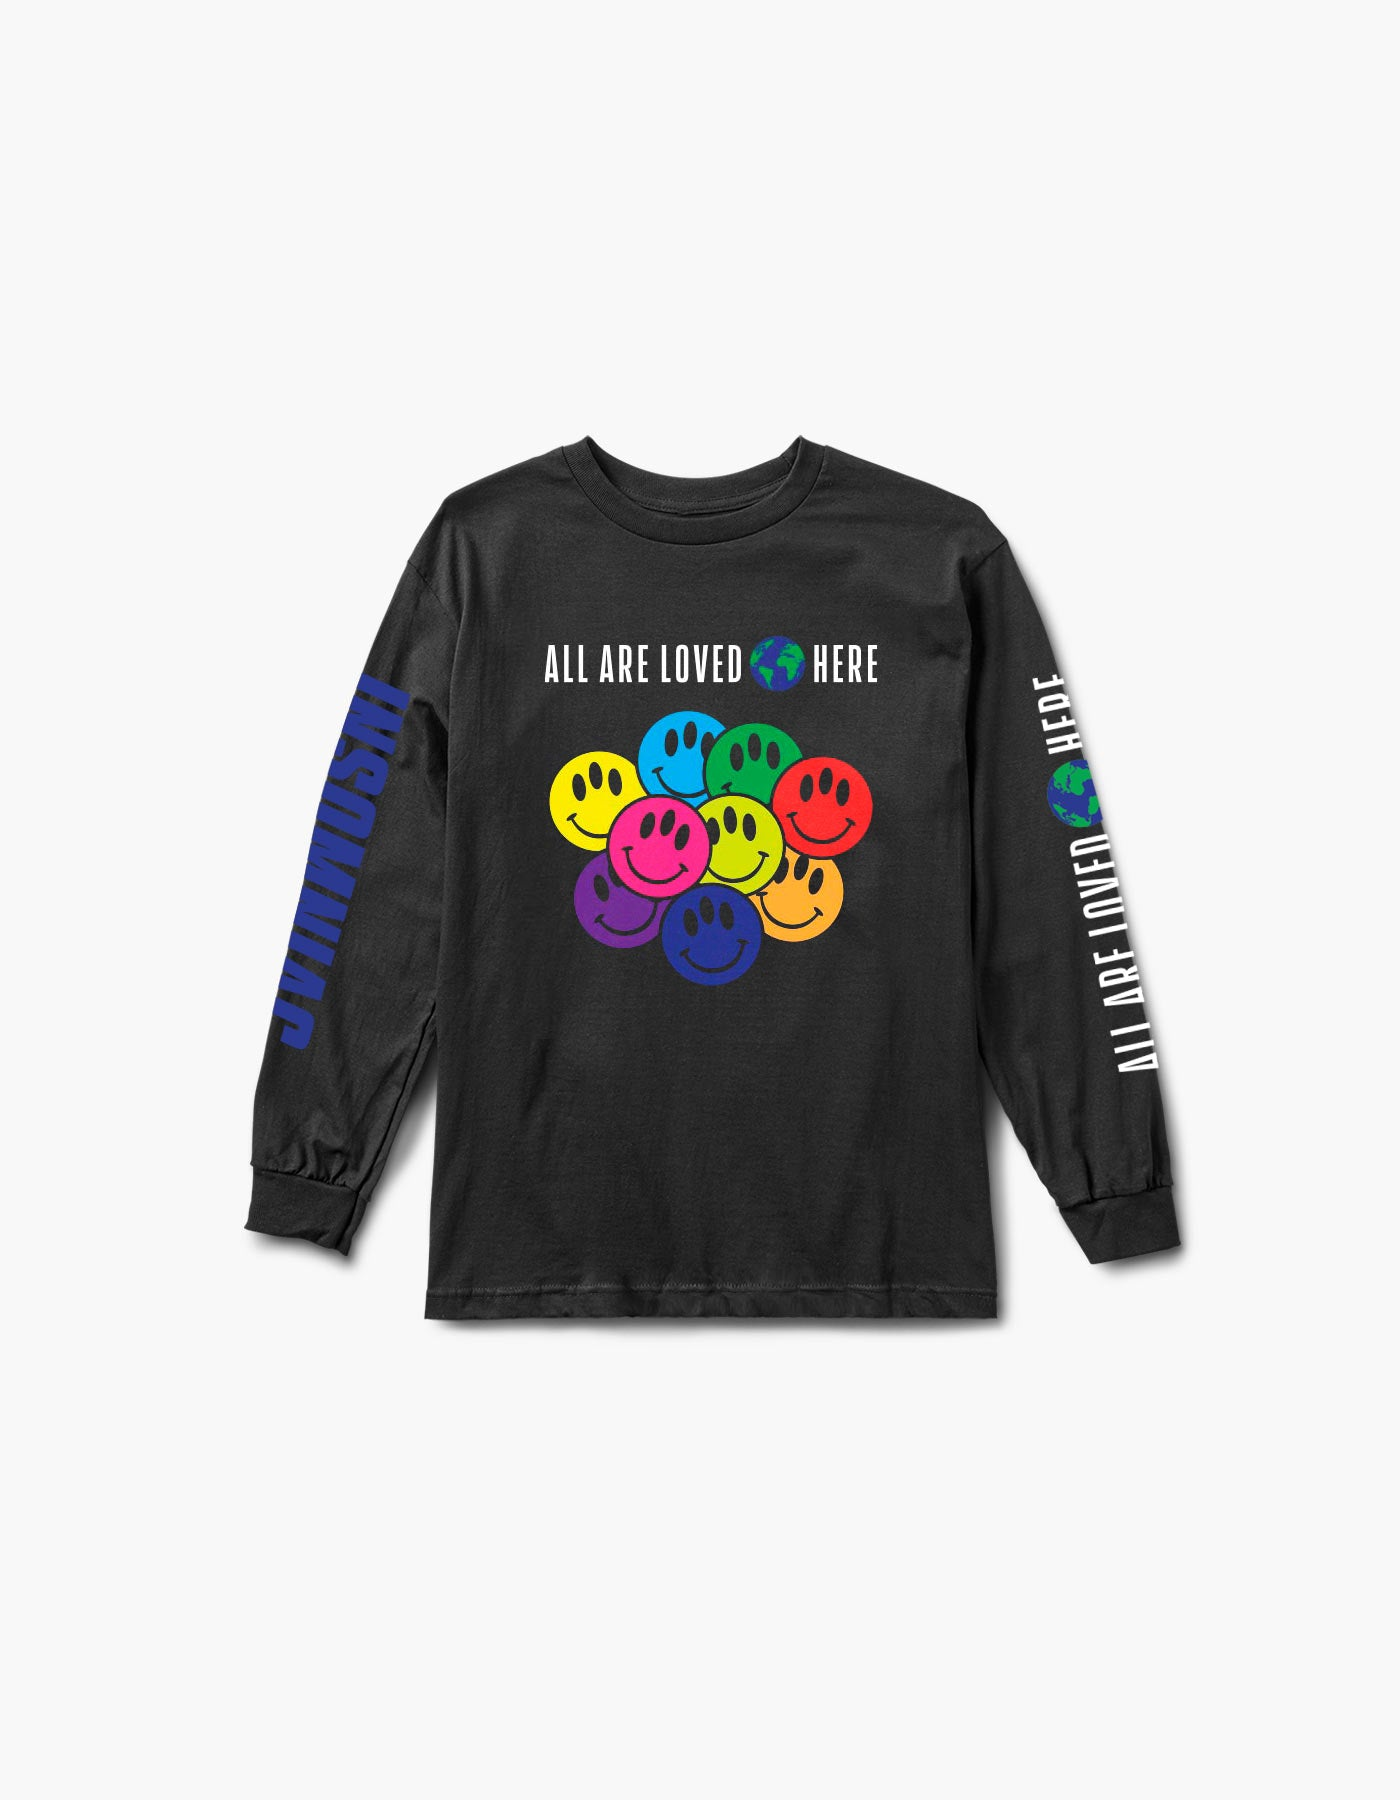 All Are Loved Here L/S Tee Black